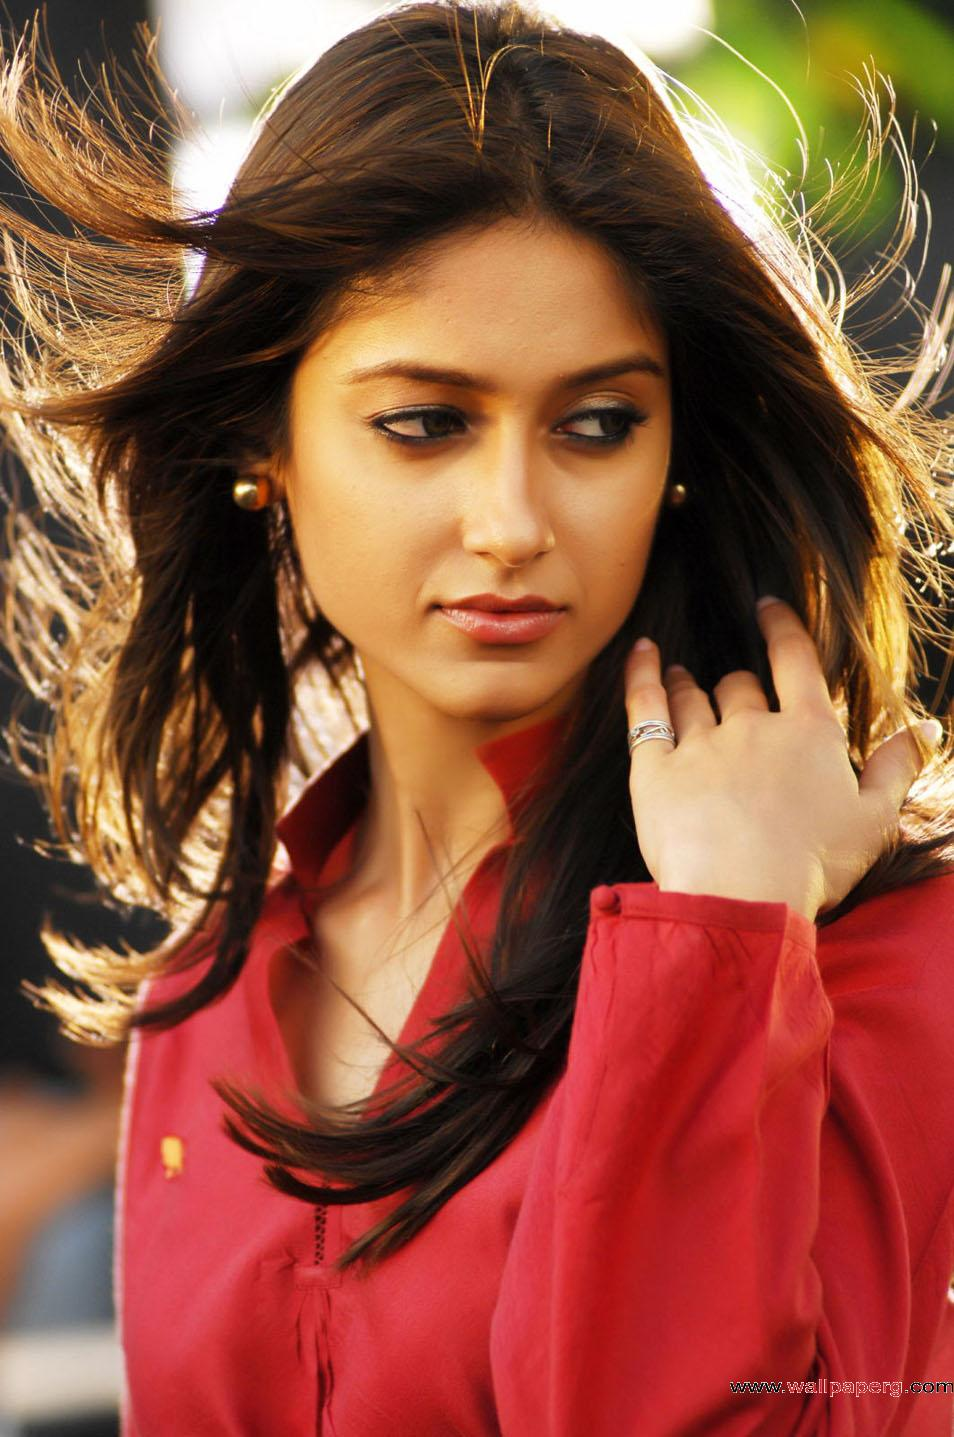 Indian Actresses Hd Wallpapers Top Free Indian Actresses Hd Backgrounds Wallpaperaccess